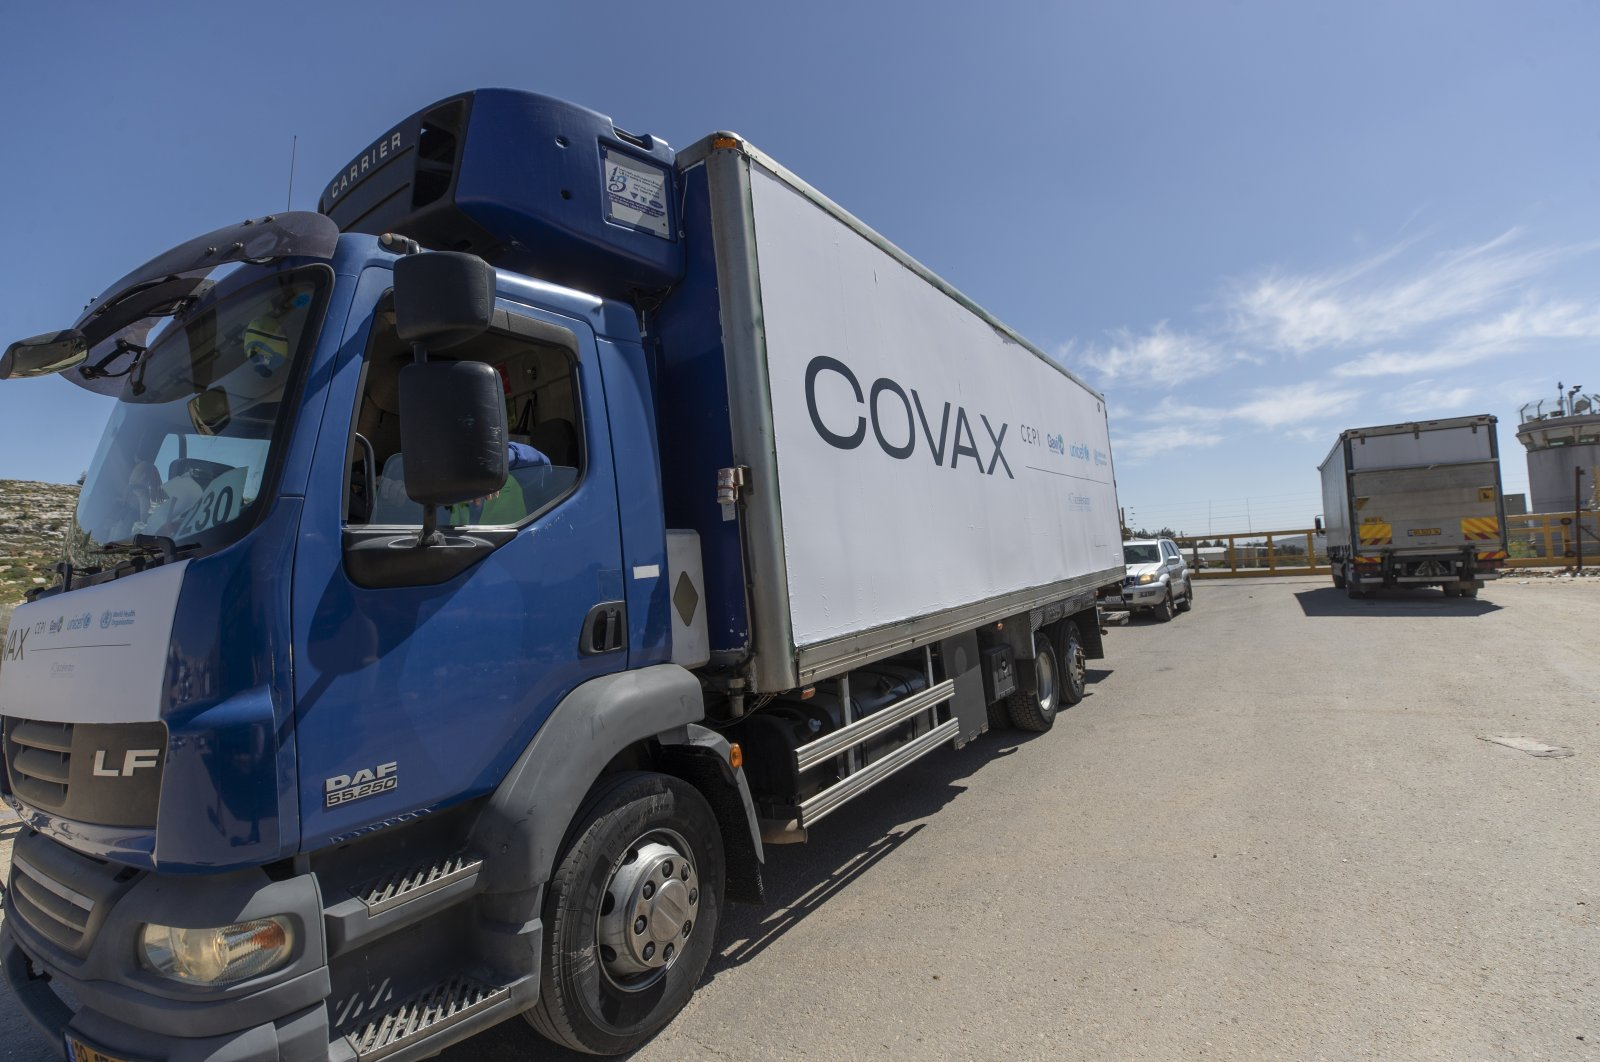 A U.N. convoy carrying coronavirus vaccines passes through the Israeli Ofer crossing heading to a Palestinian health ministry's warehouse, on the outskirts of the West Bank city of Ramallah, March 17, 2021. (AP Photo)